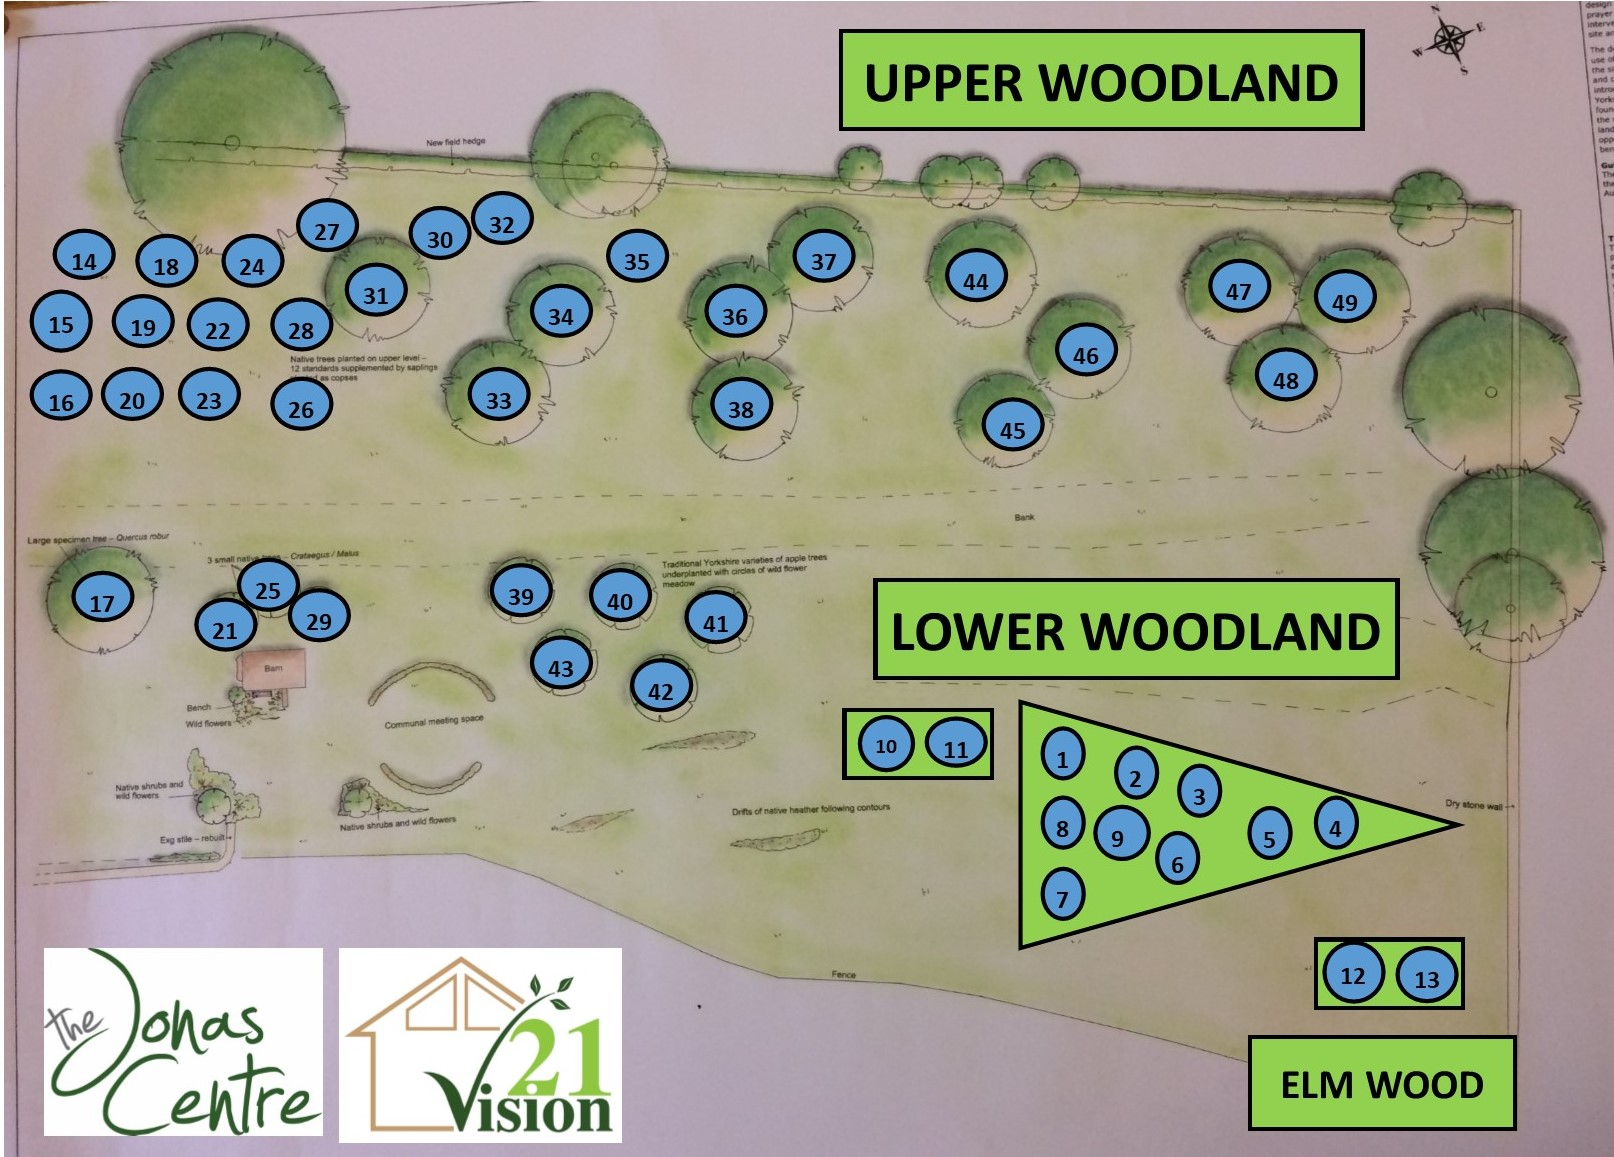 the jonas centre memorial woodland project 2019